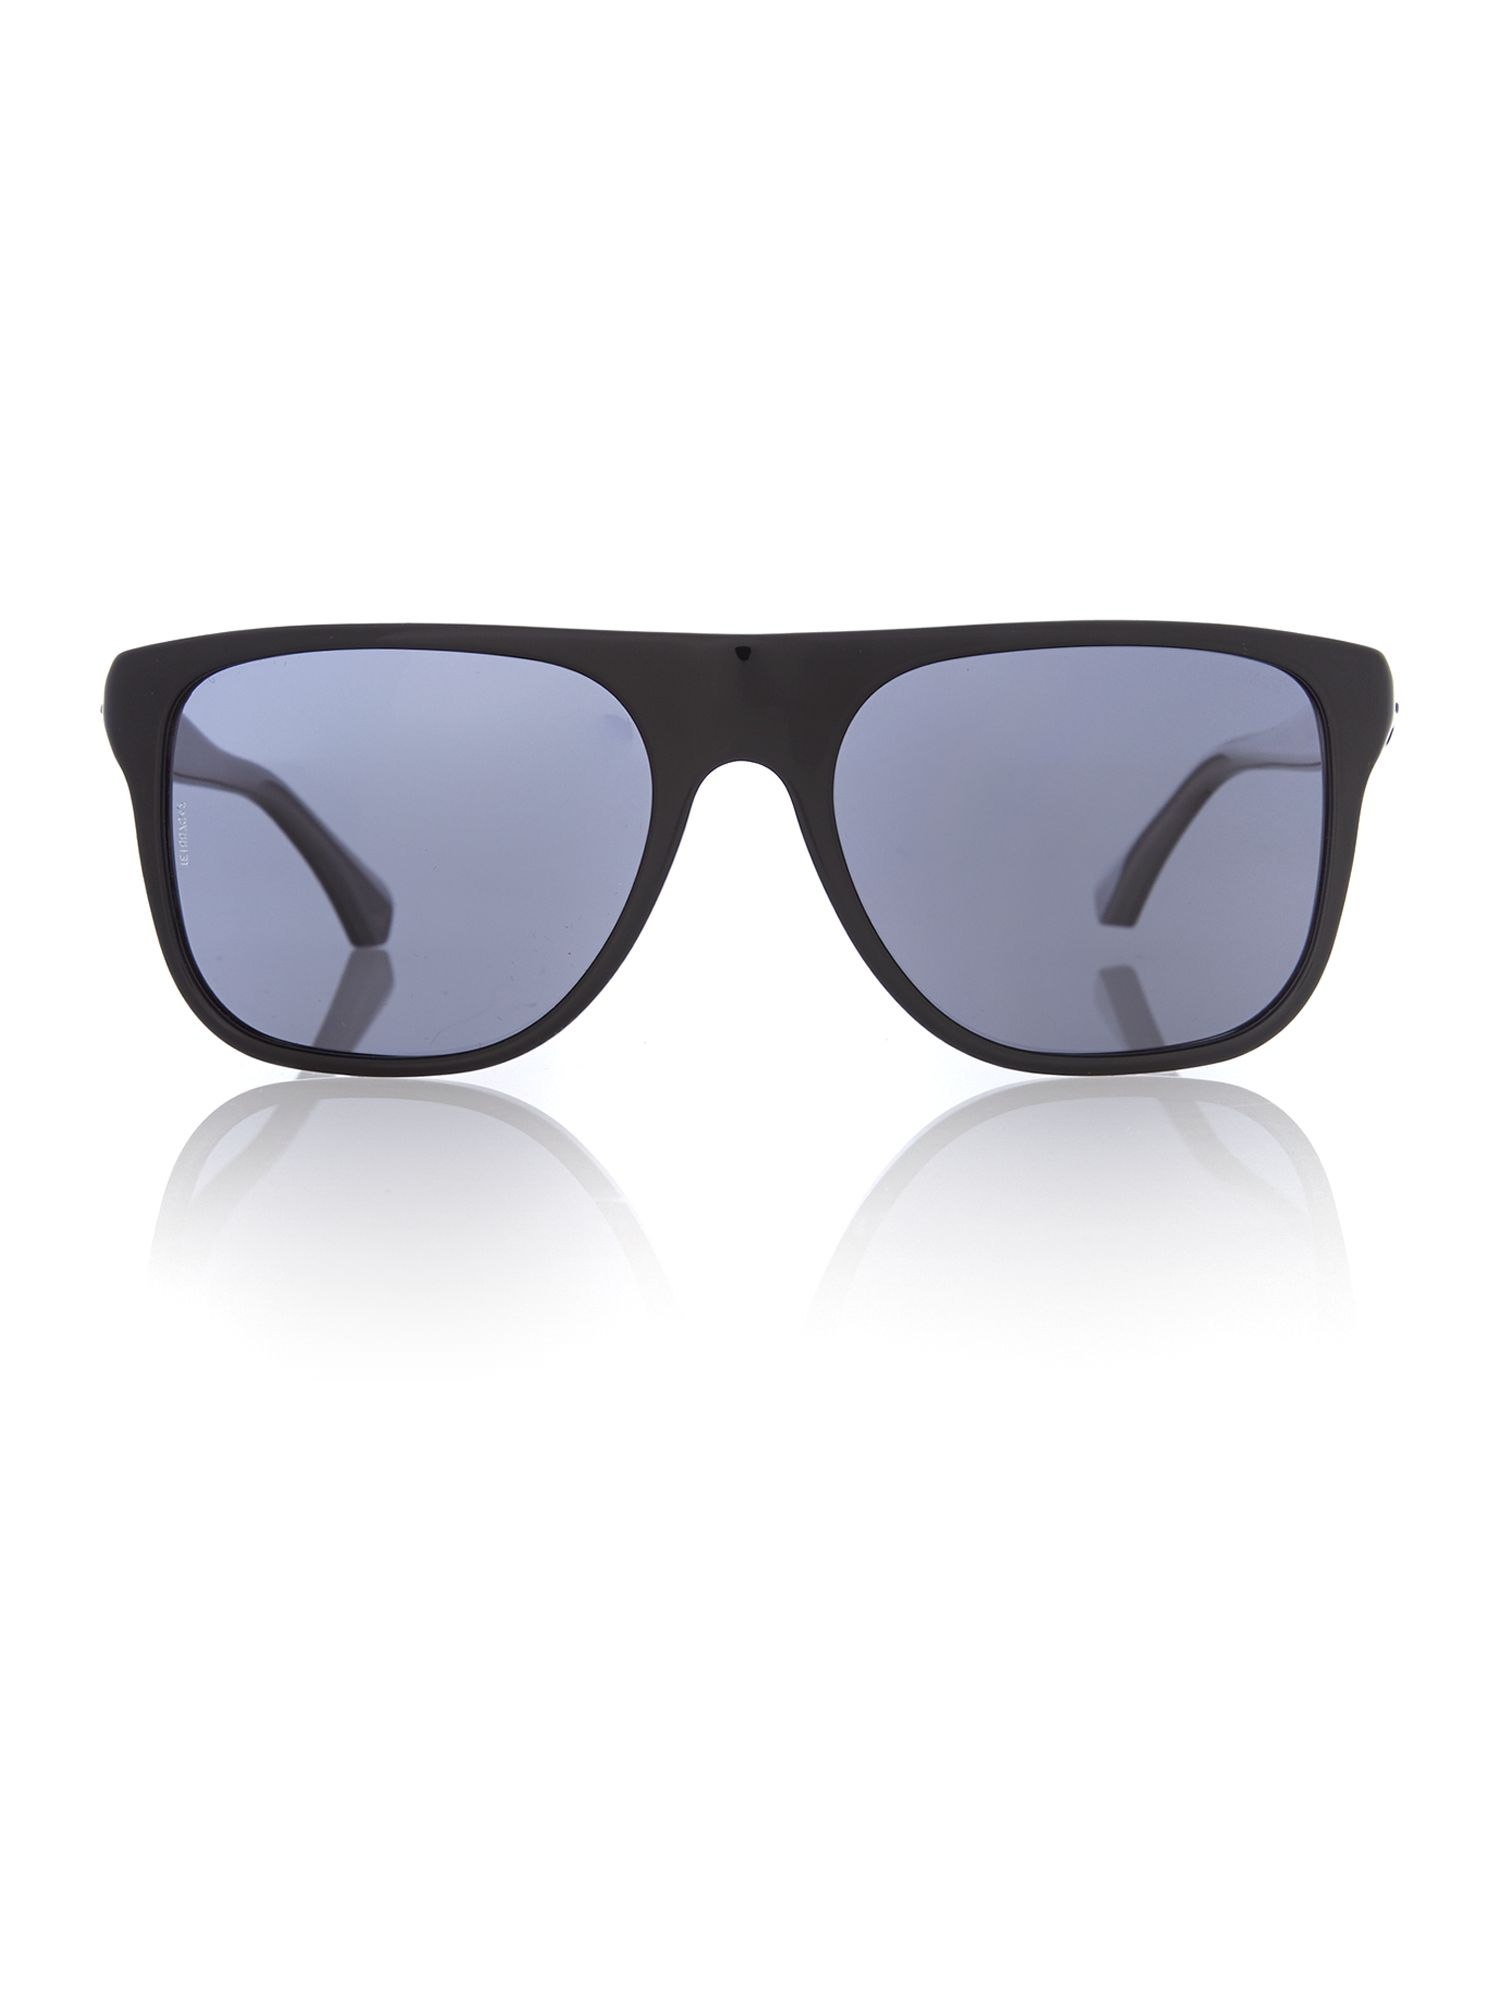 Mens Black Square Sunglasses